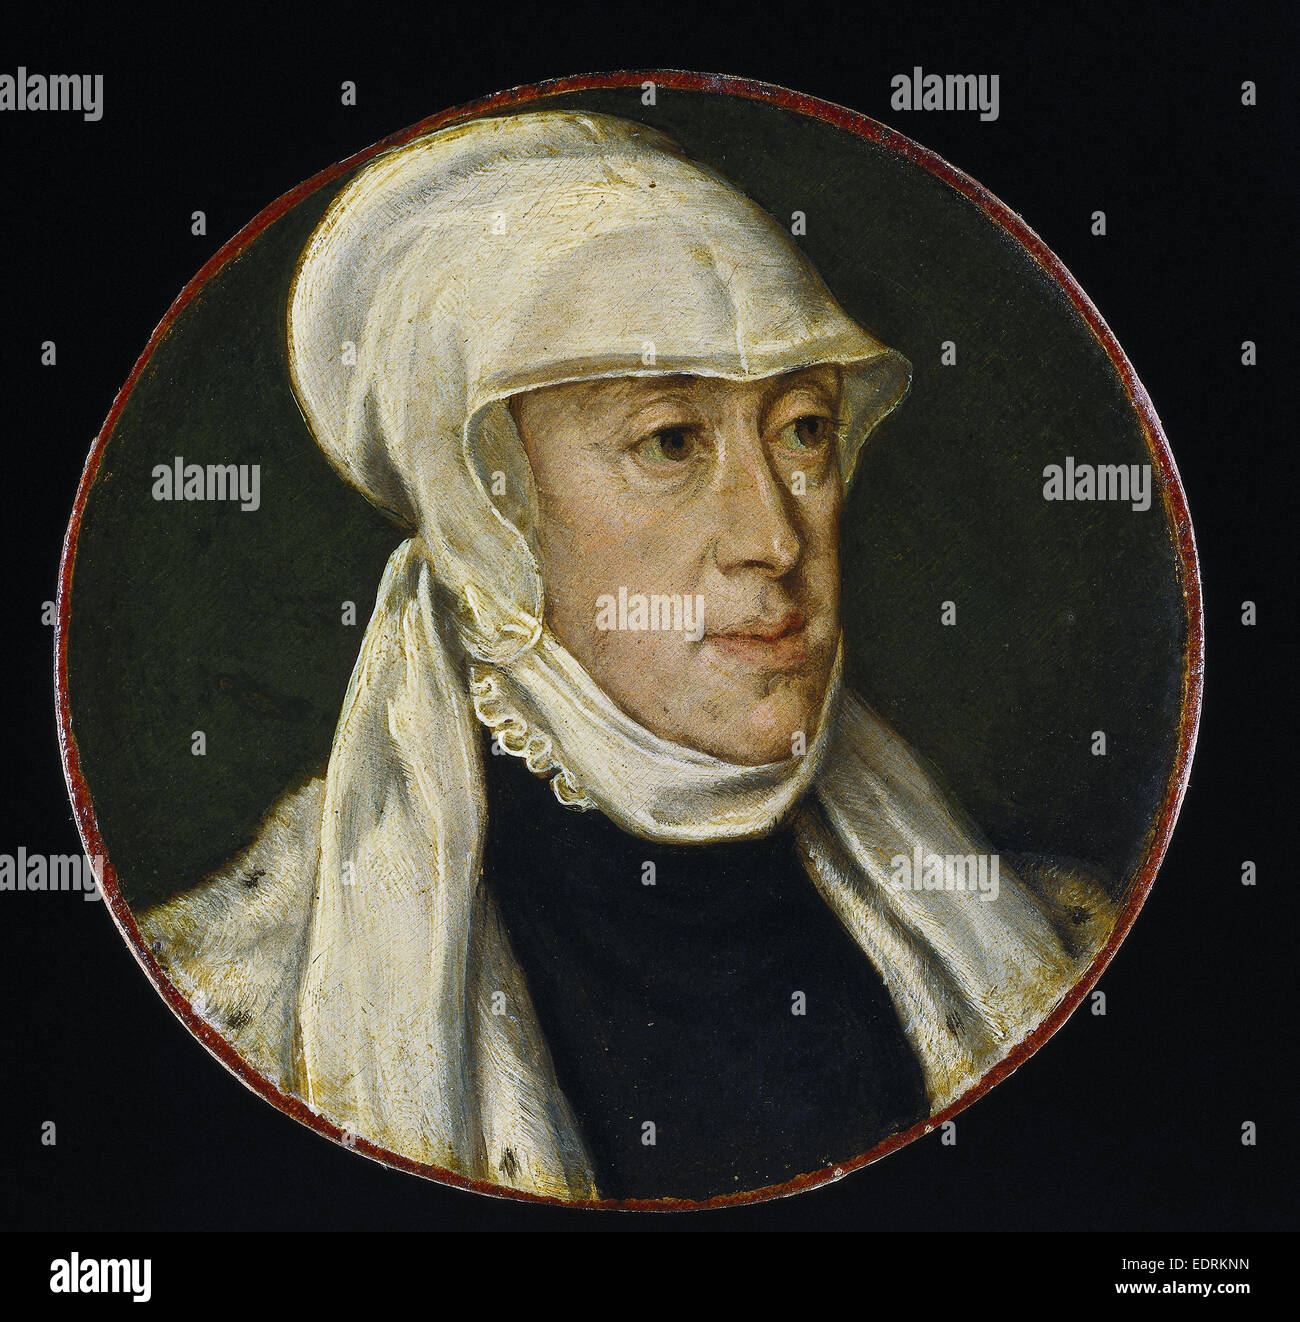 Maria of Hungary, Regent of the Netherlands, Anonymous, 1550 - 1560, Portrait miniature - Stock Image